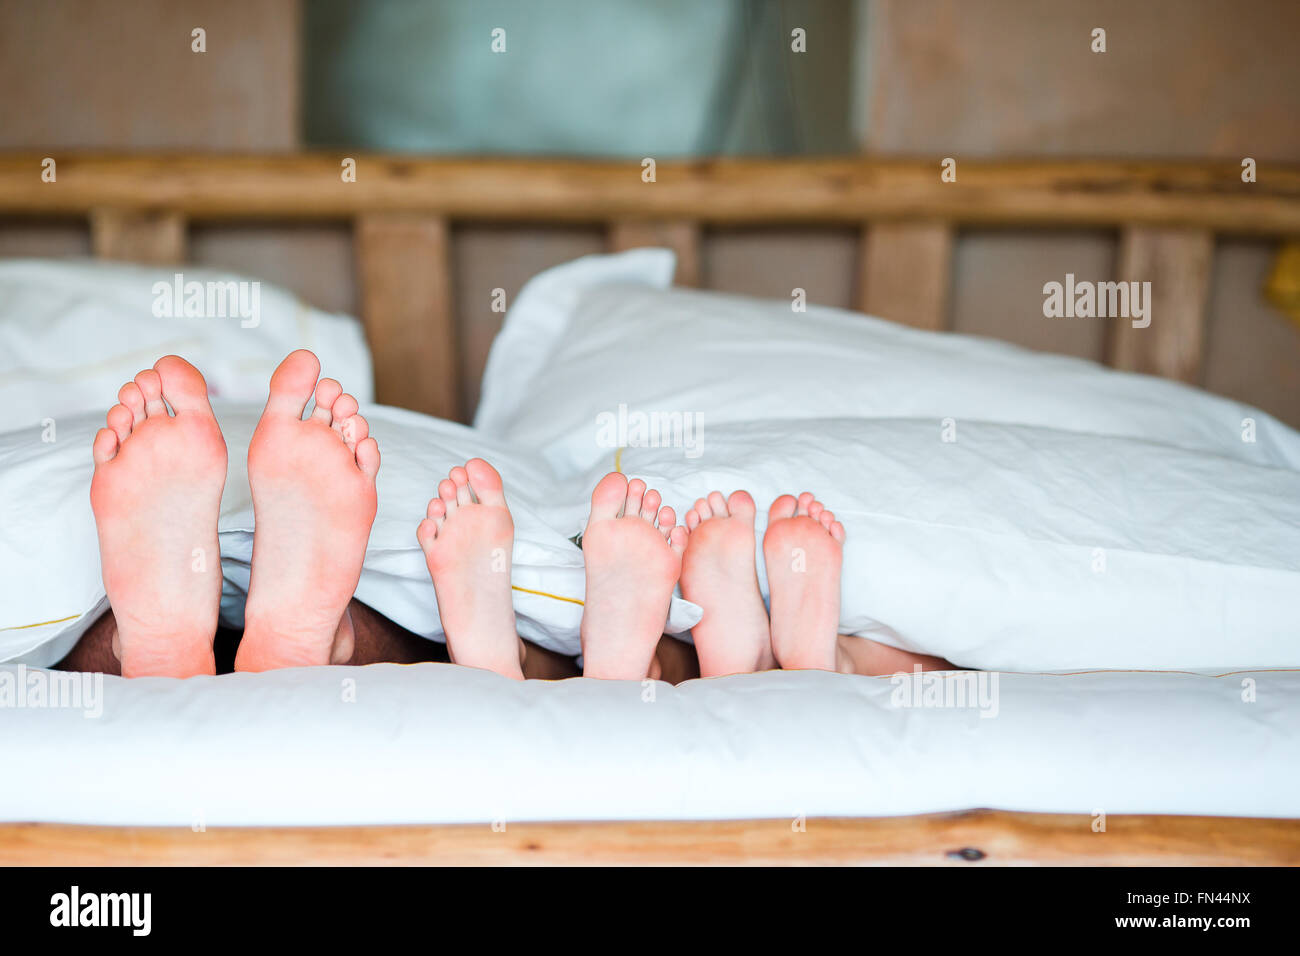 Feet of family in bed - Stock Image